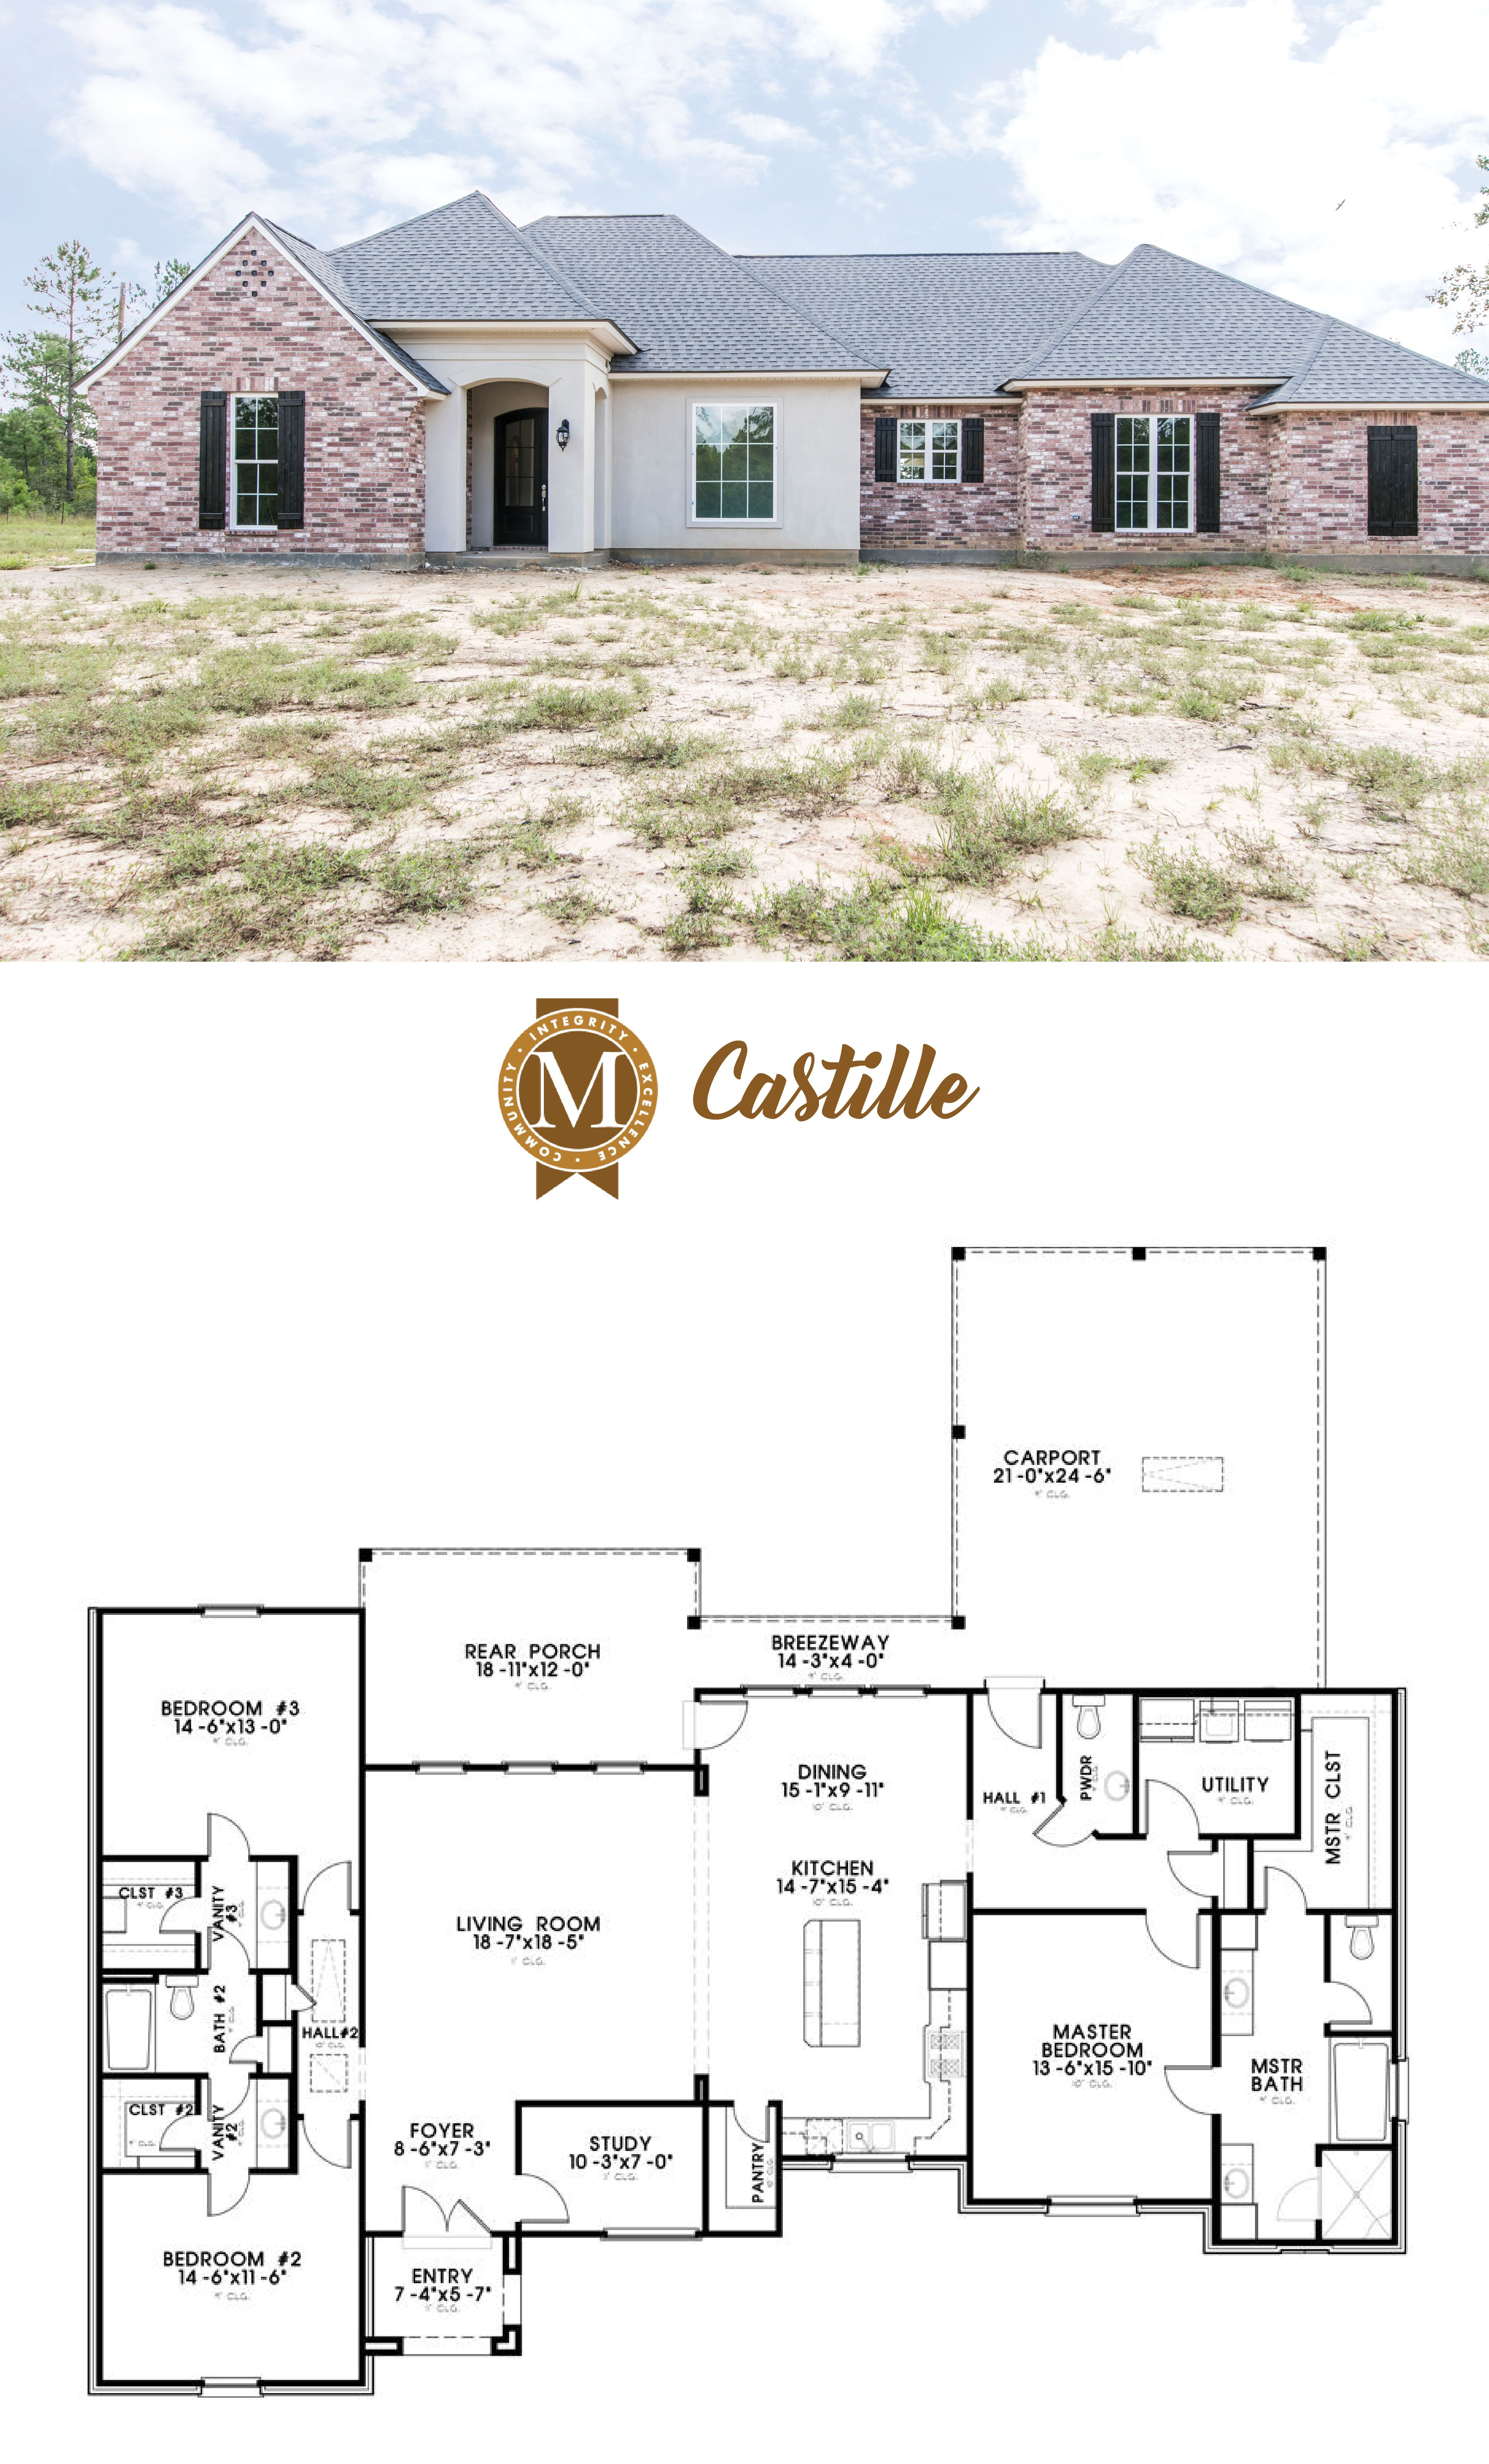 House Plans In Baton Rouge Luxury Plan Castille Living Square Feet 2526 Bedrooms 4